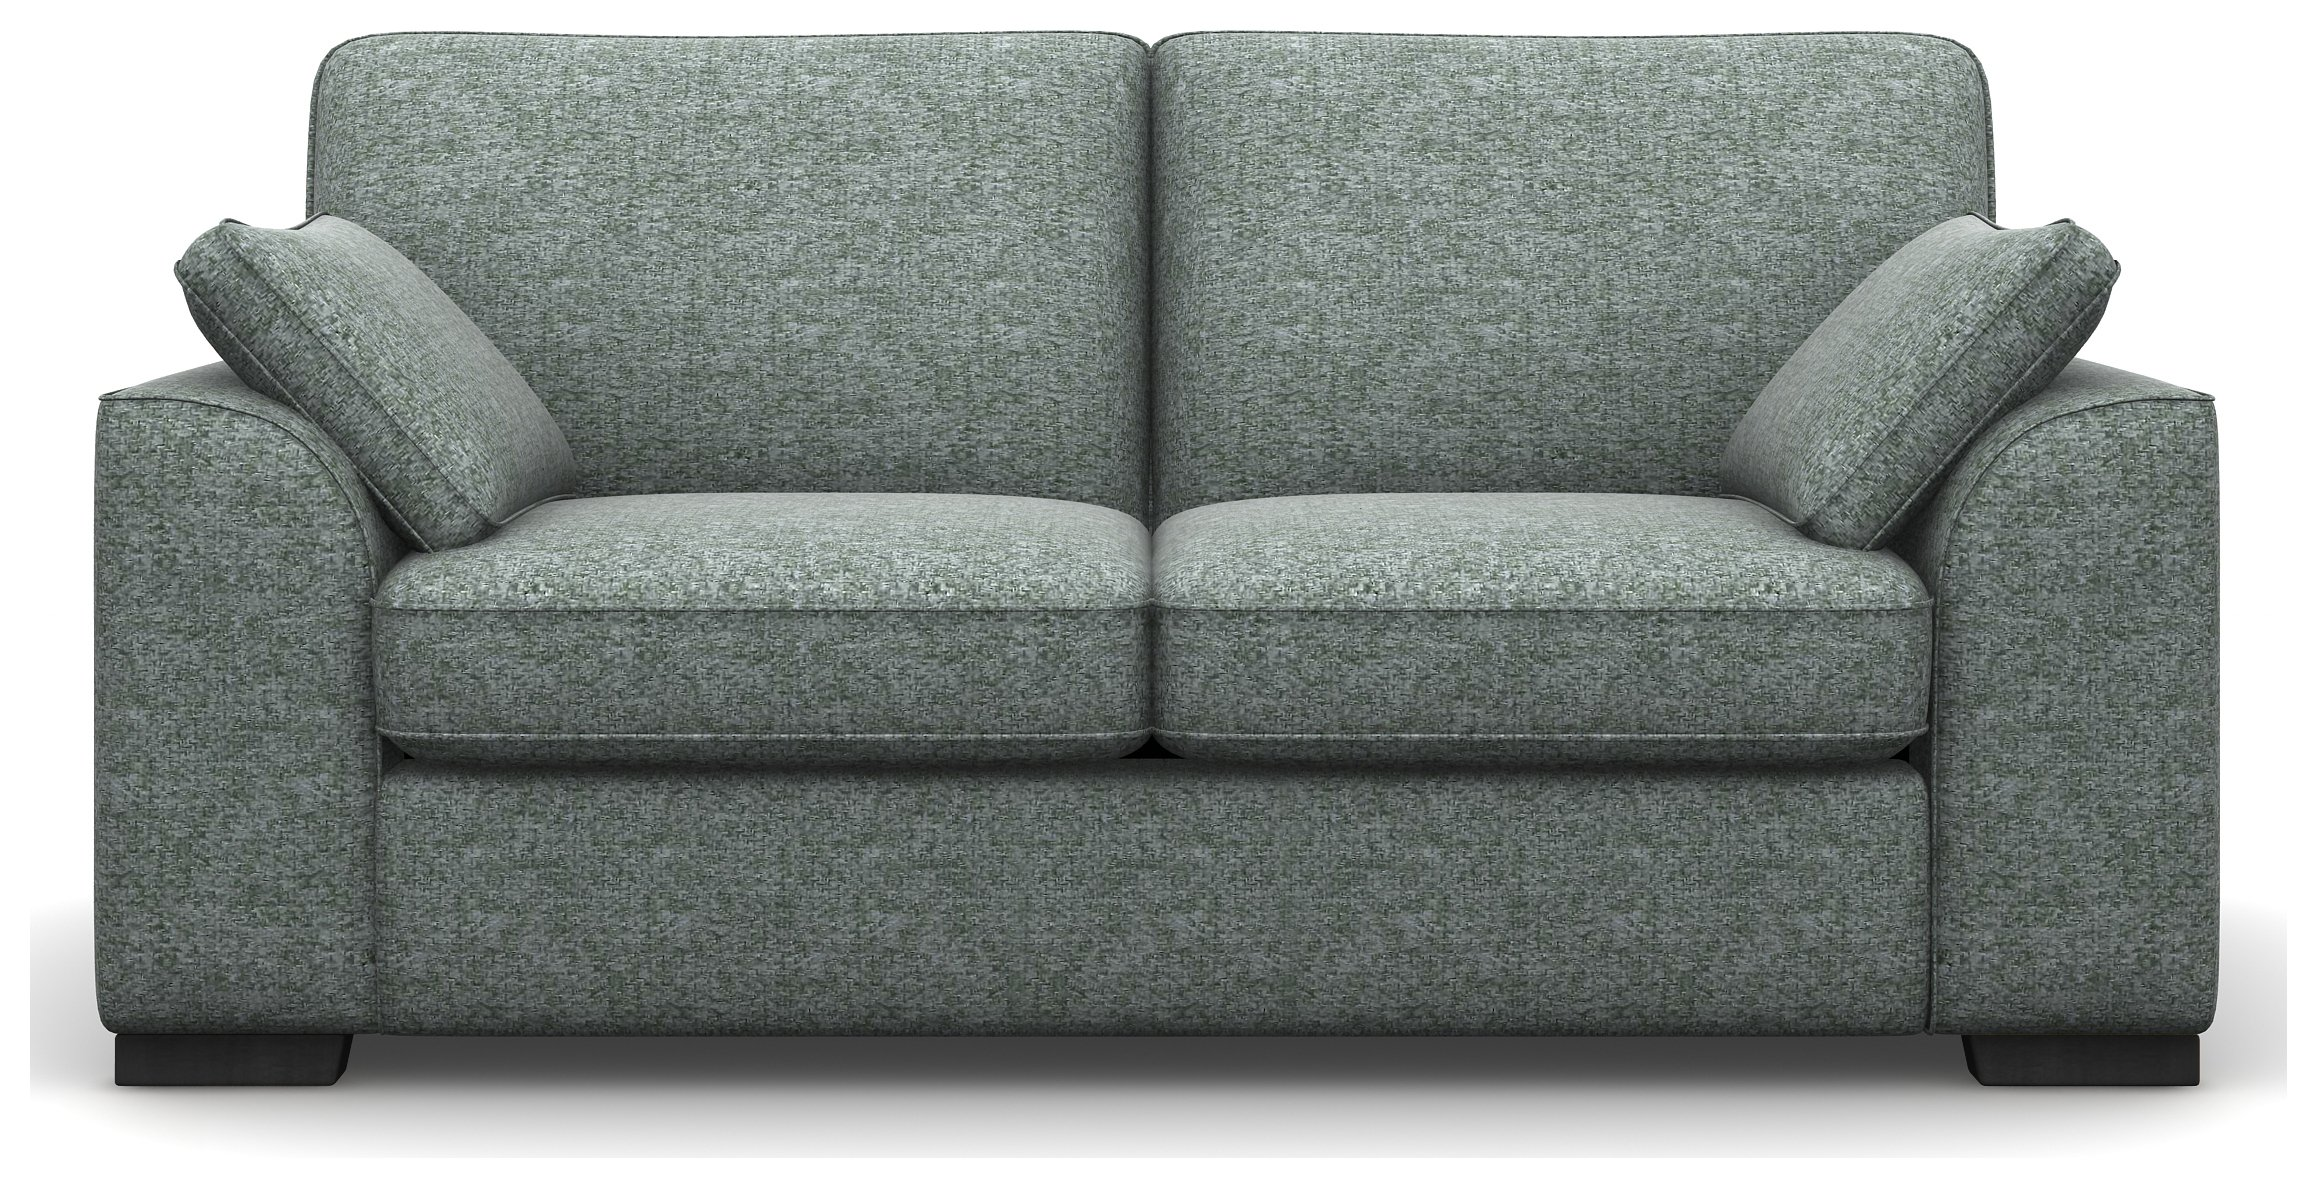 Heart of House Lincoln 2 Seat Tweed Fabric Sofa - Duck Egg + Black Legs